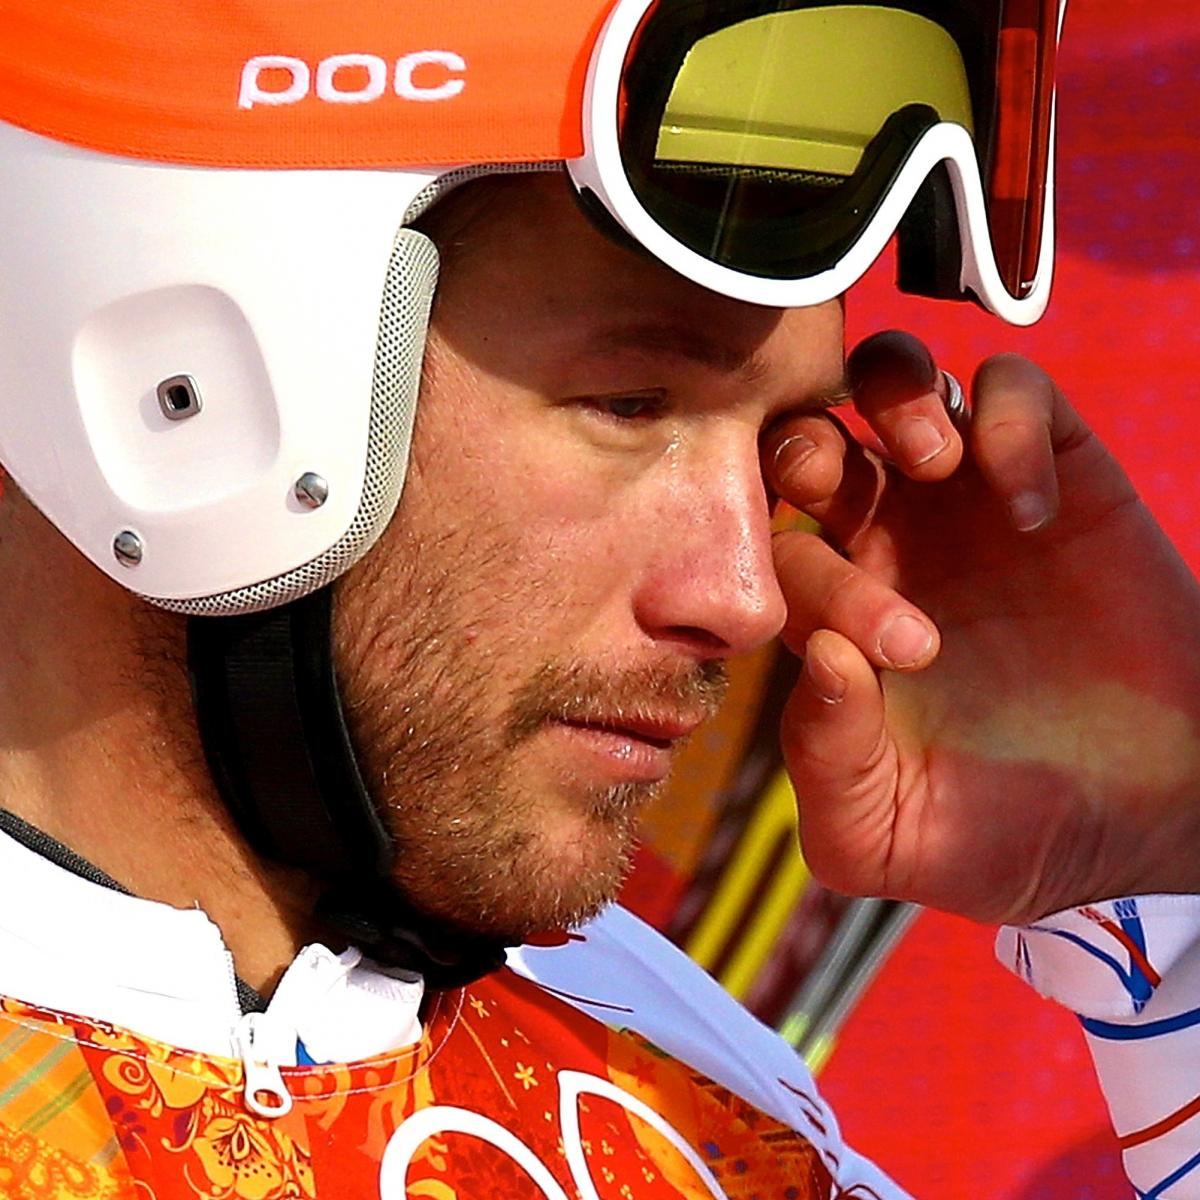 Bode Miller: Bode Miller Brought To Tears During Post-Race Interview